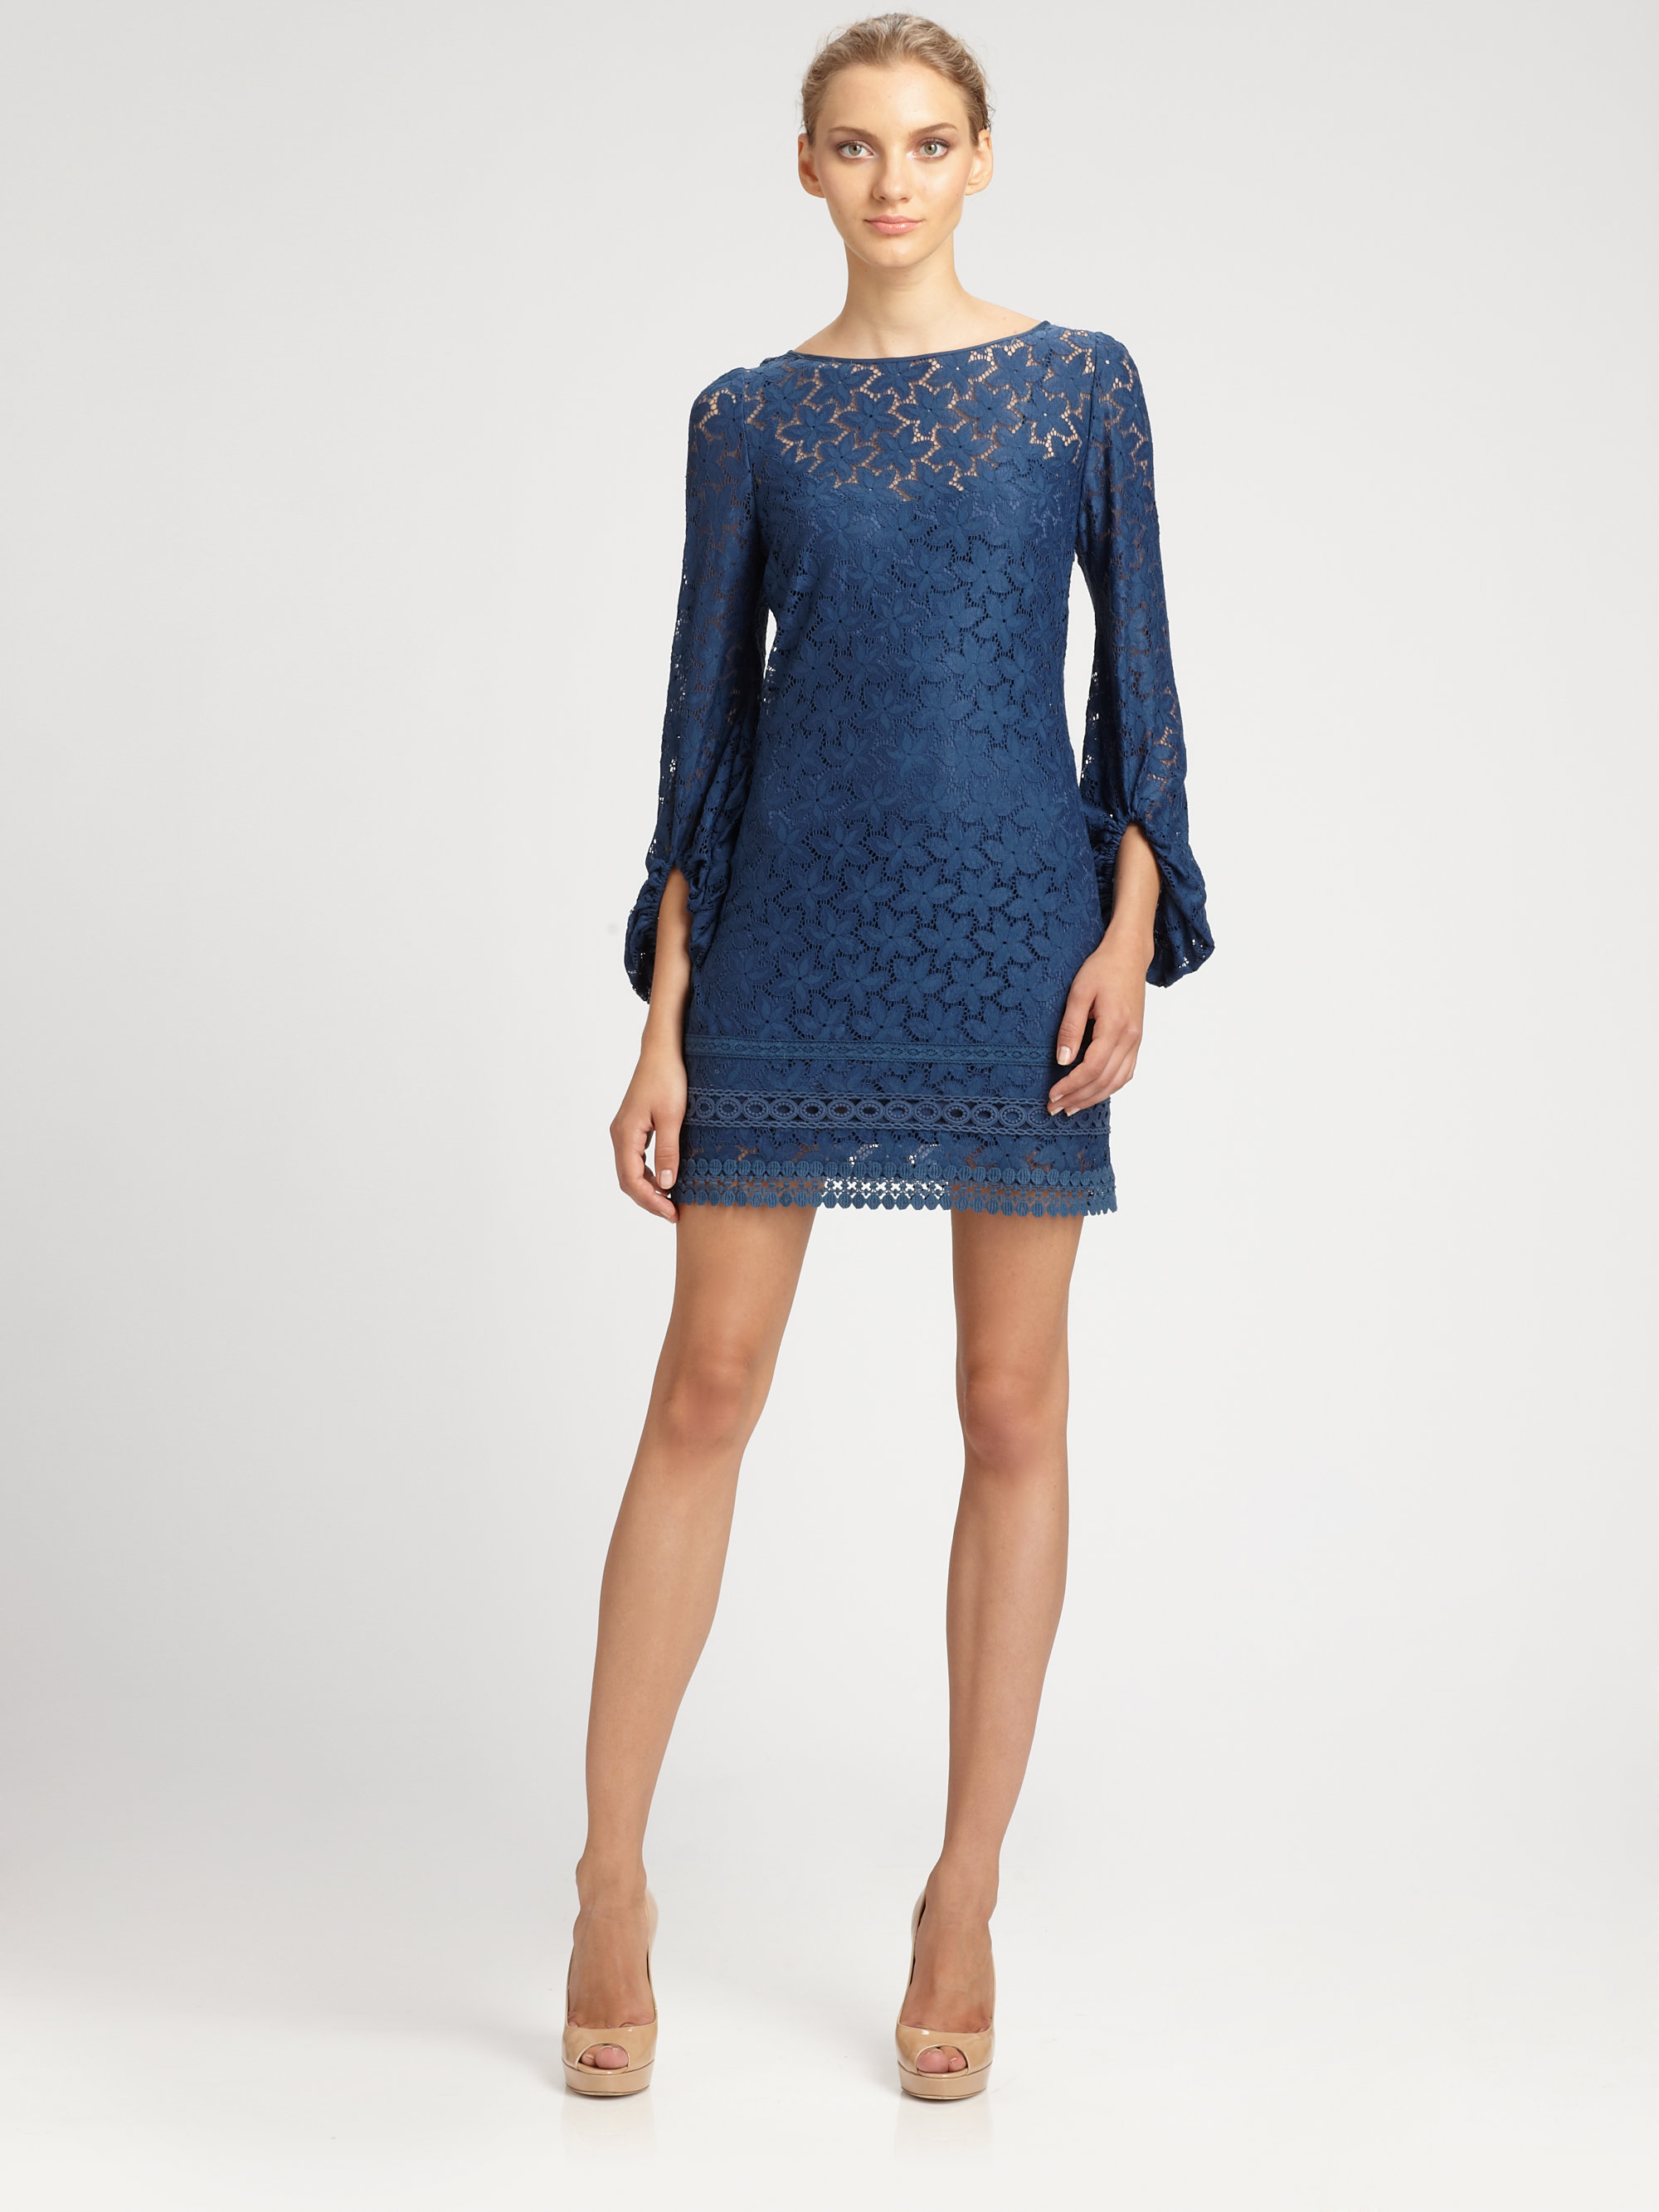 Lyst - Laundry by Shelli Segal Lace Dress in Blue 6d29add31c10